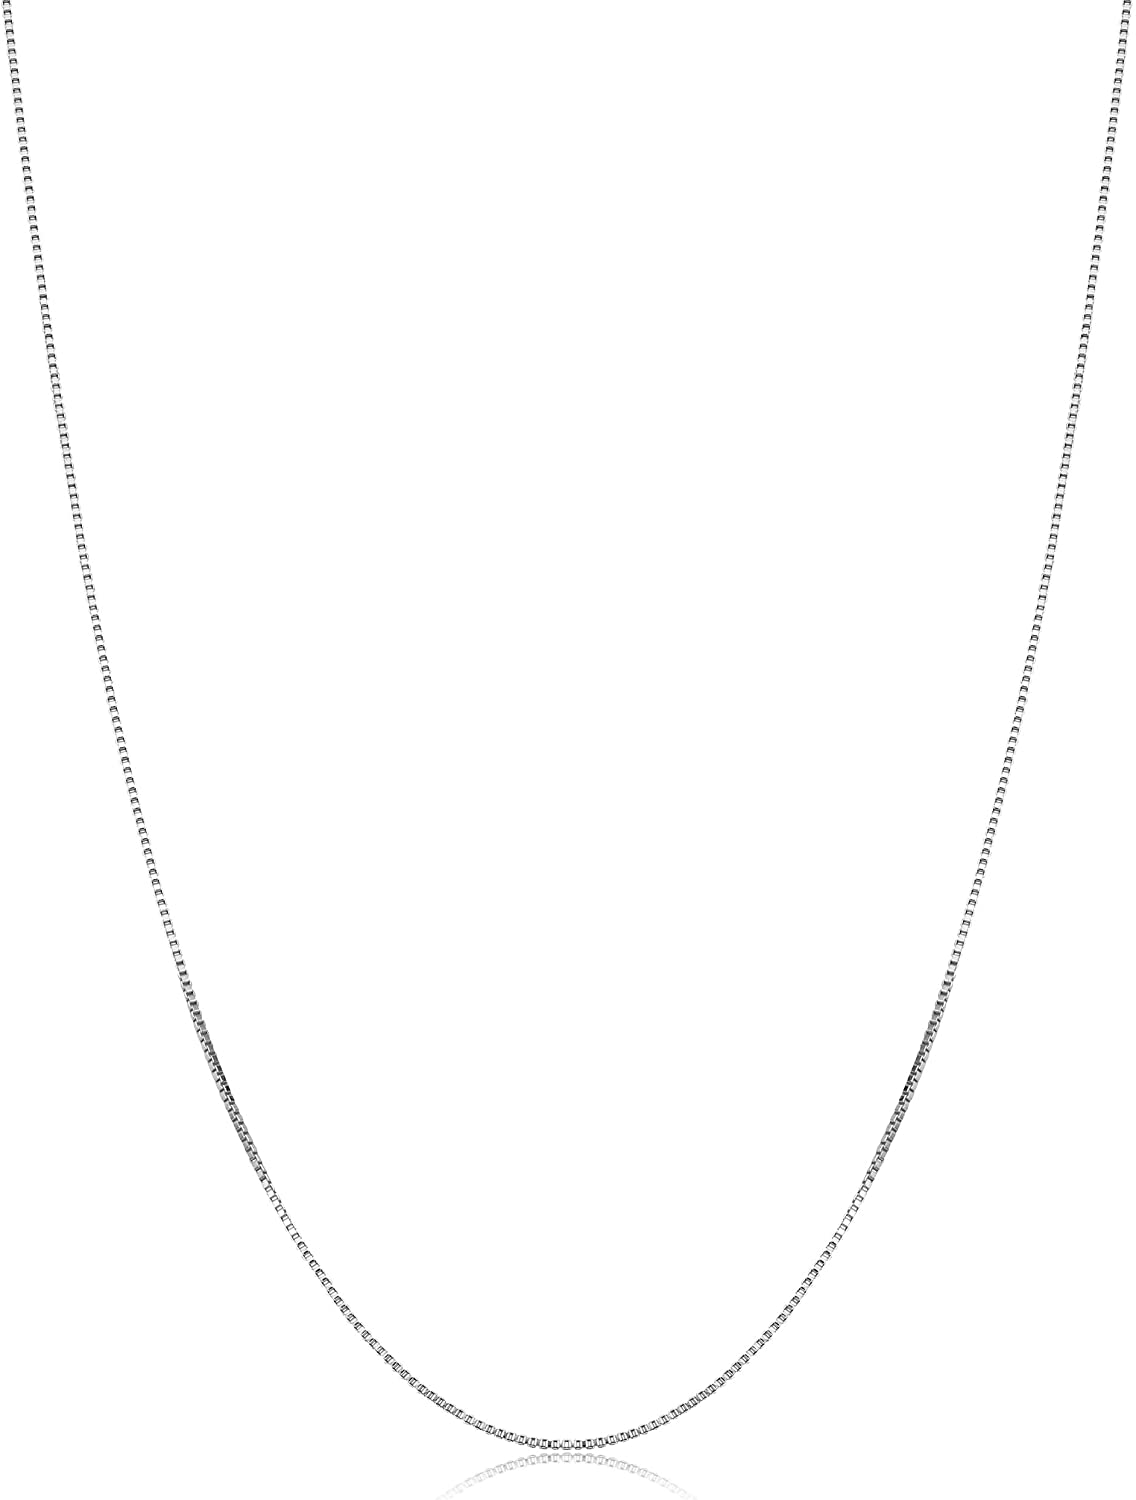 KoolJewelry Sterling Silver Box Chain Necklace For Women 16-30 Inch (0.8 mm, 0.9 mm or 1 mm)